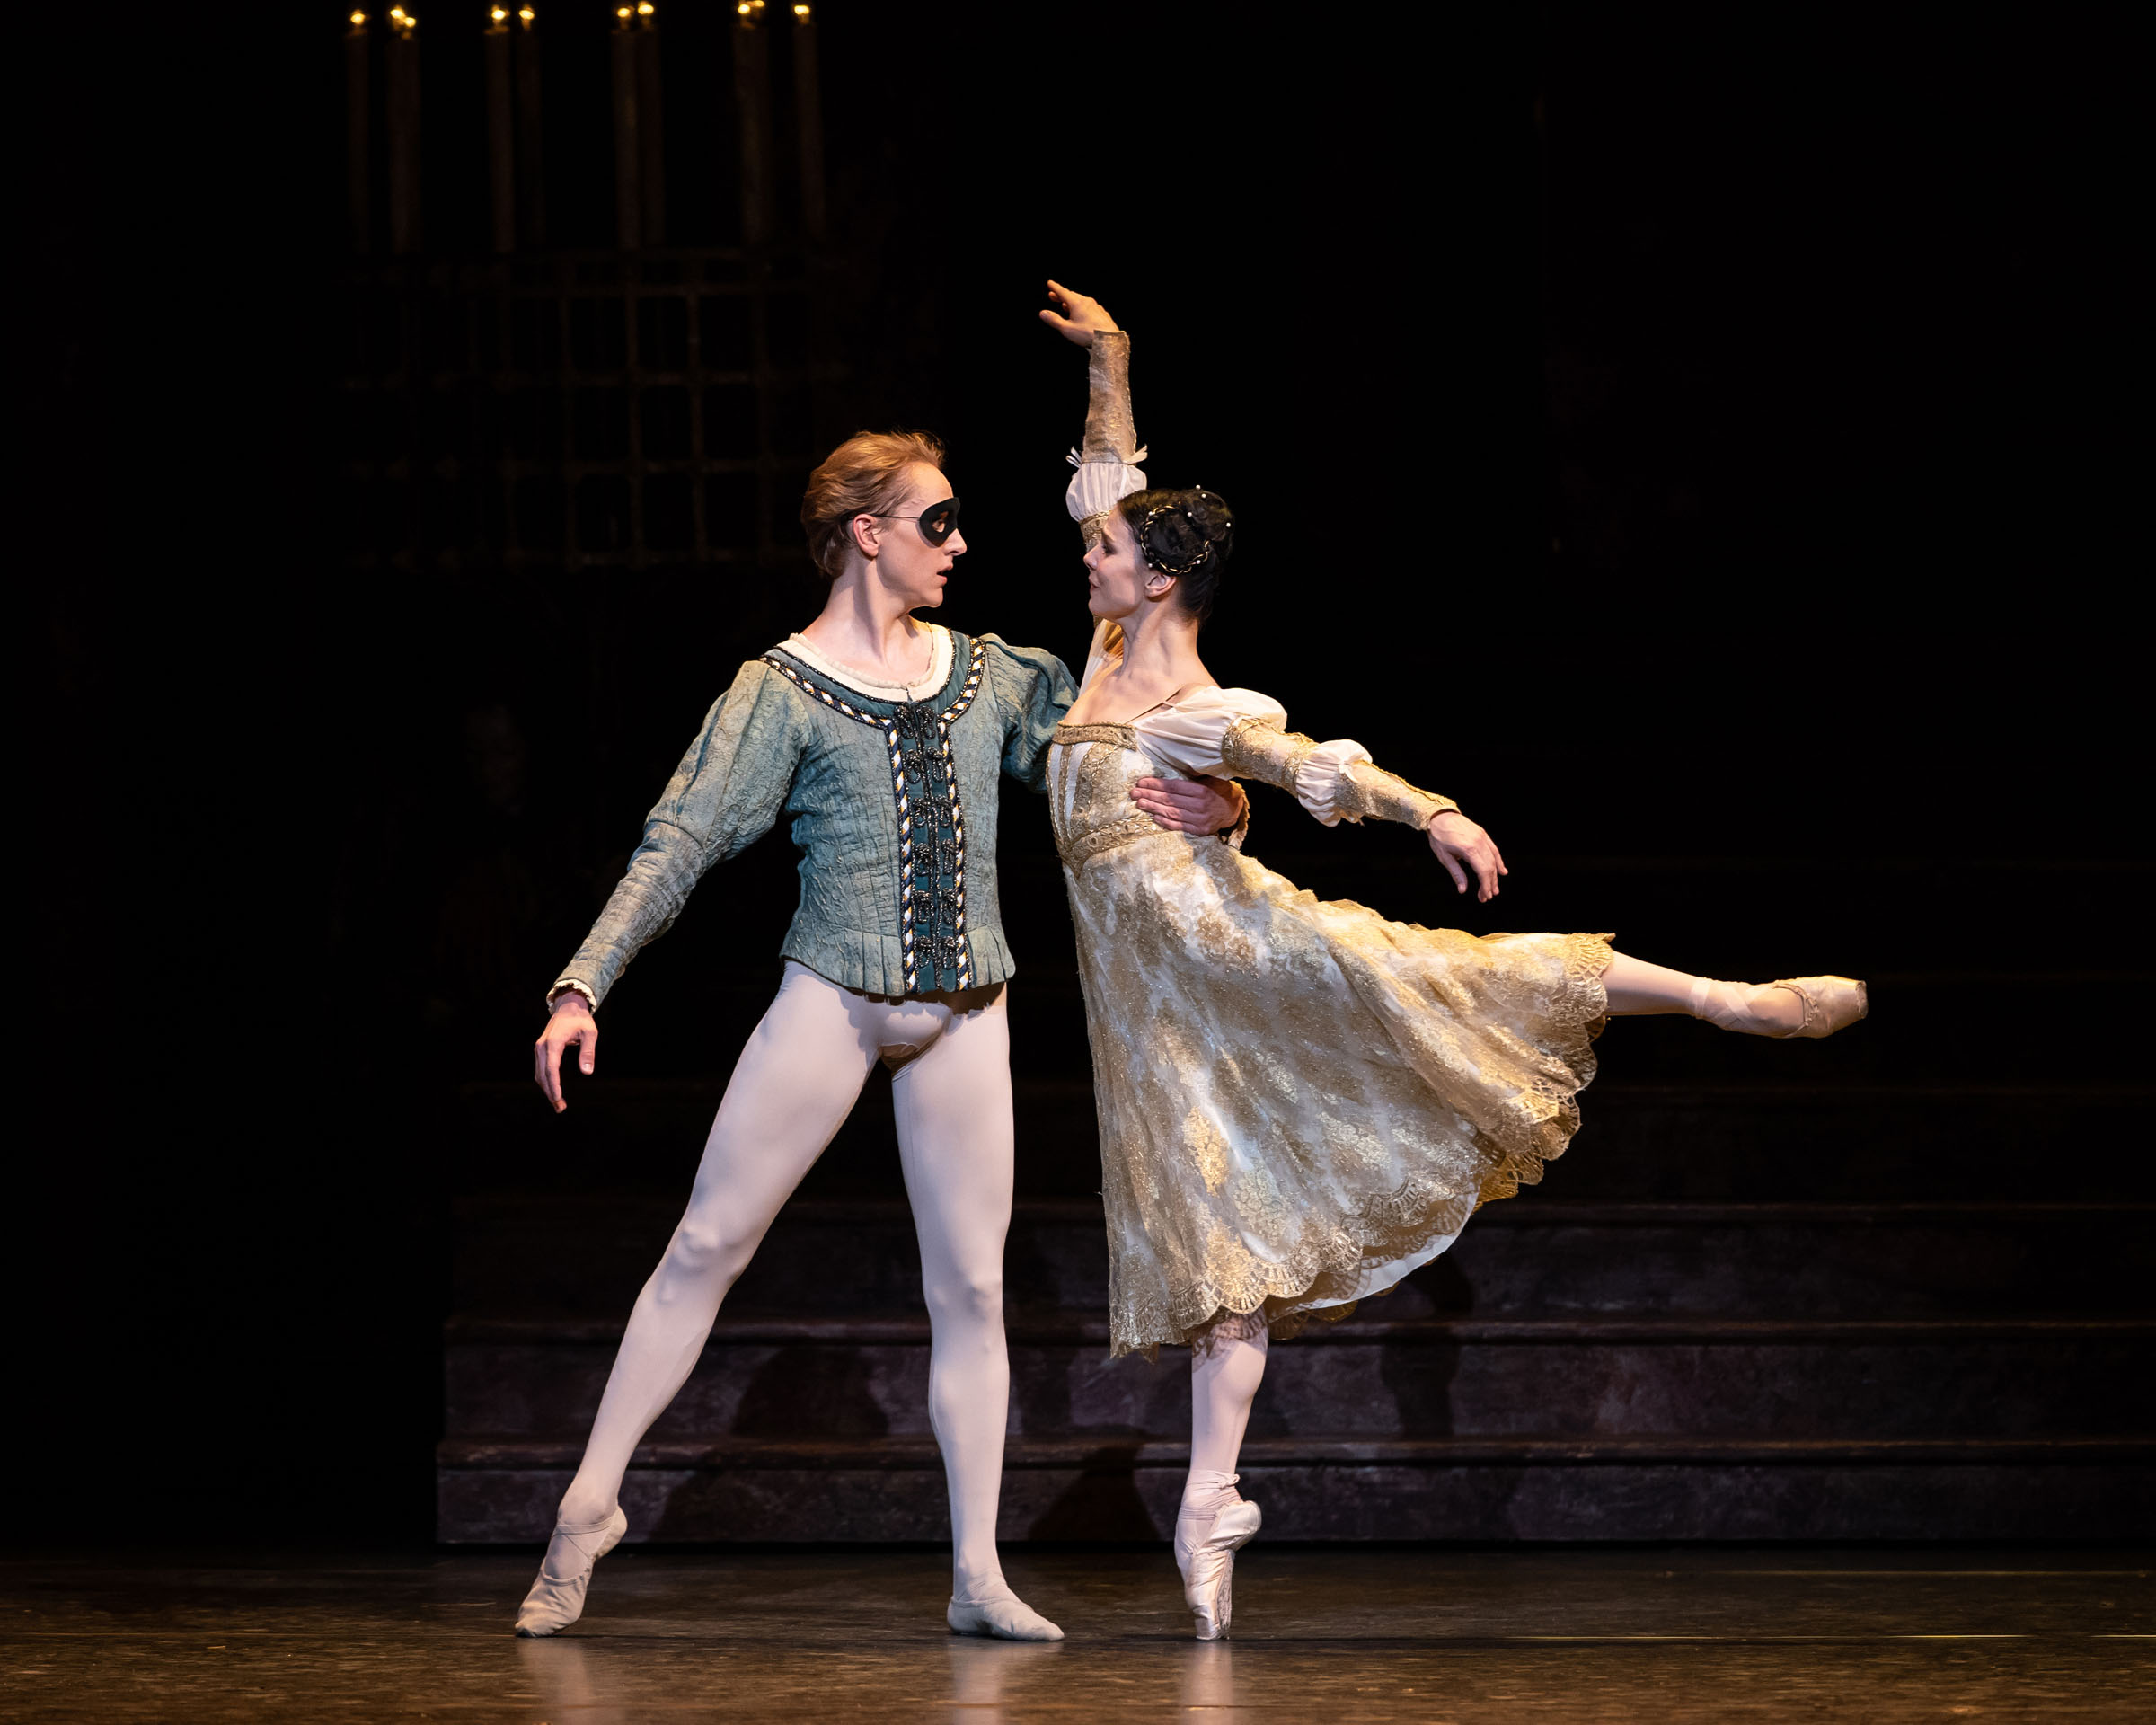 David Hallberg as Romeo and Natalia Osipova as Juliet